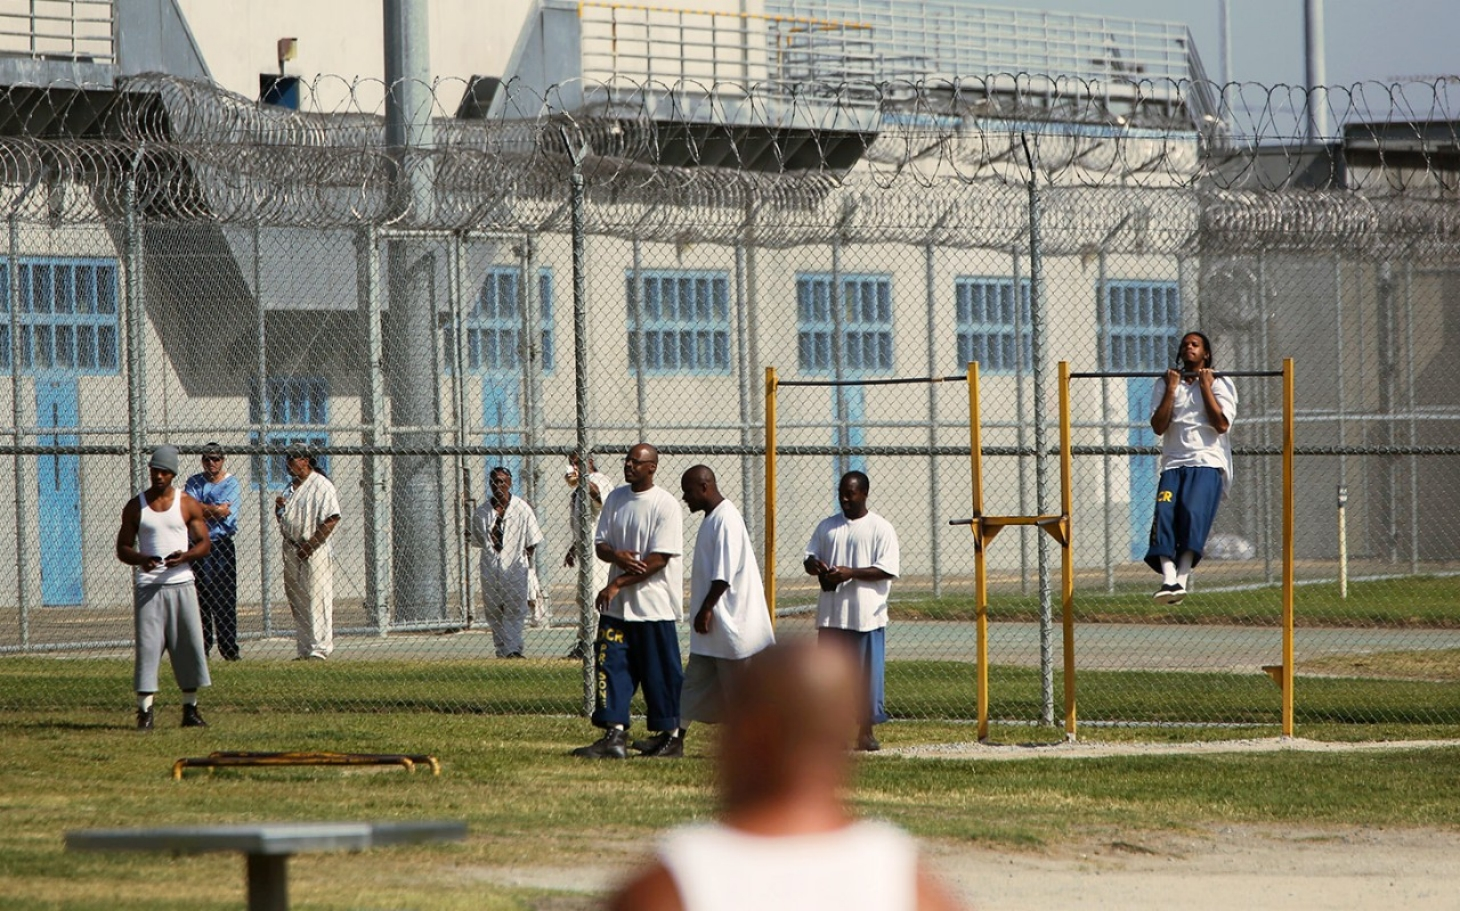 Chuckawalla Valley State Prison – California